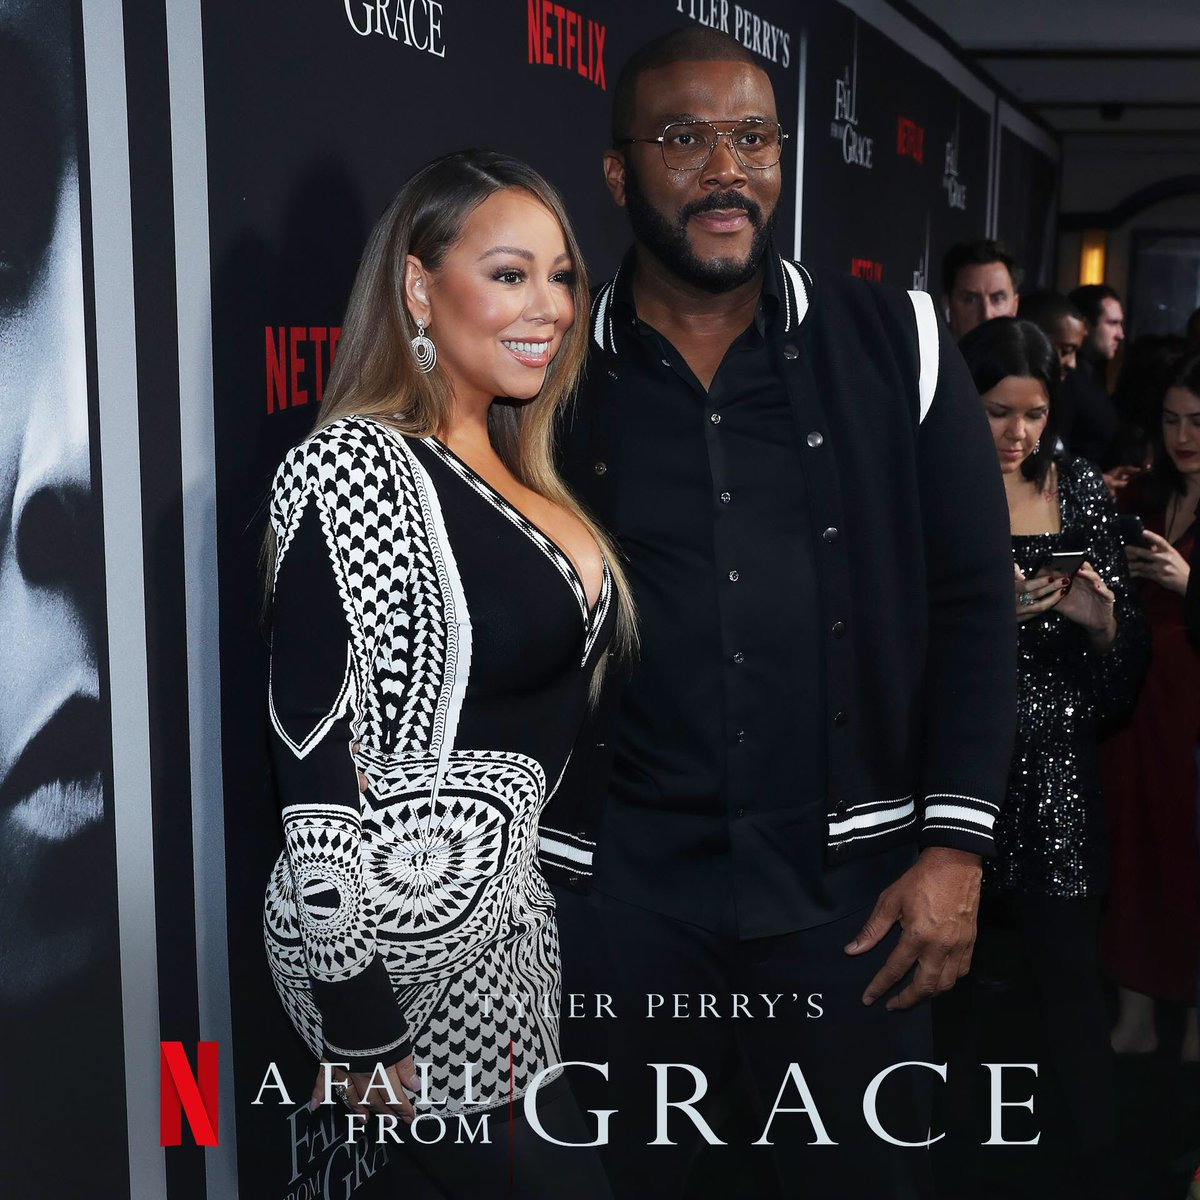 Thank you @mariahcarey for coming out to support me tonight at the premiere!  #AFallFromGrace 📷: @bennett_raglin